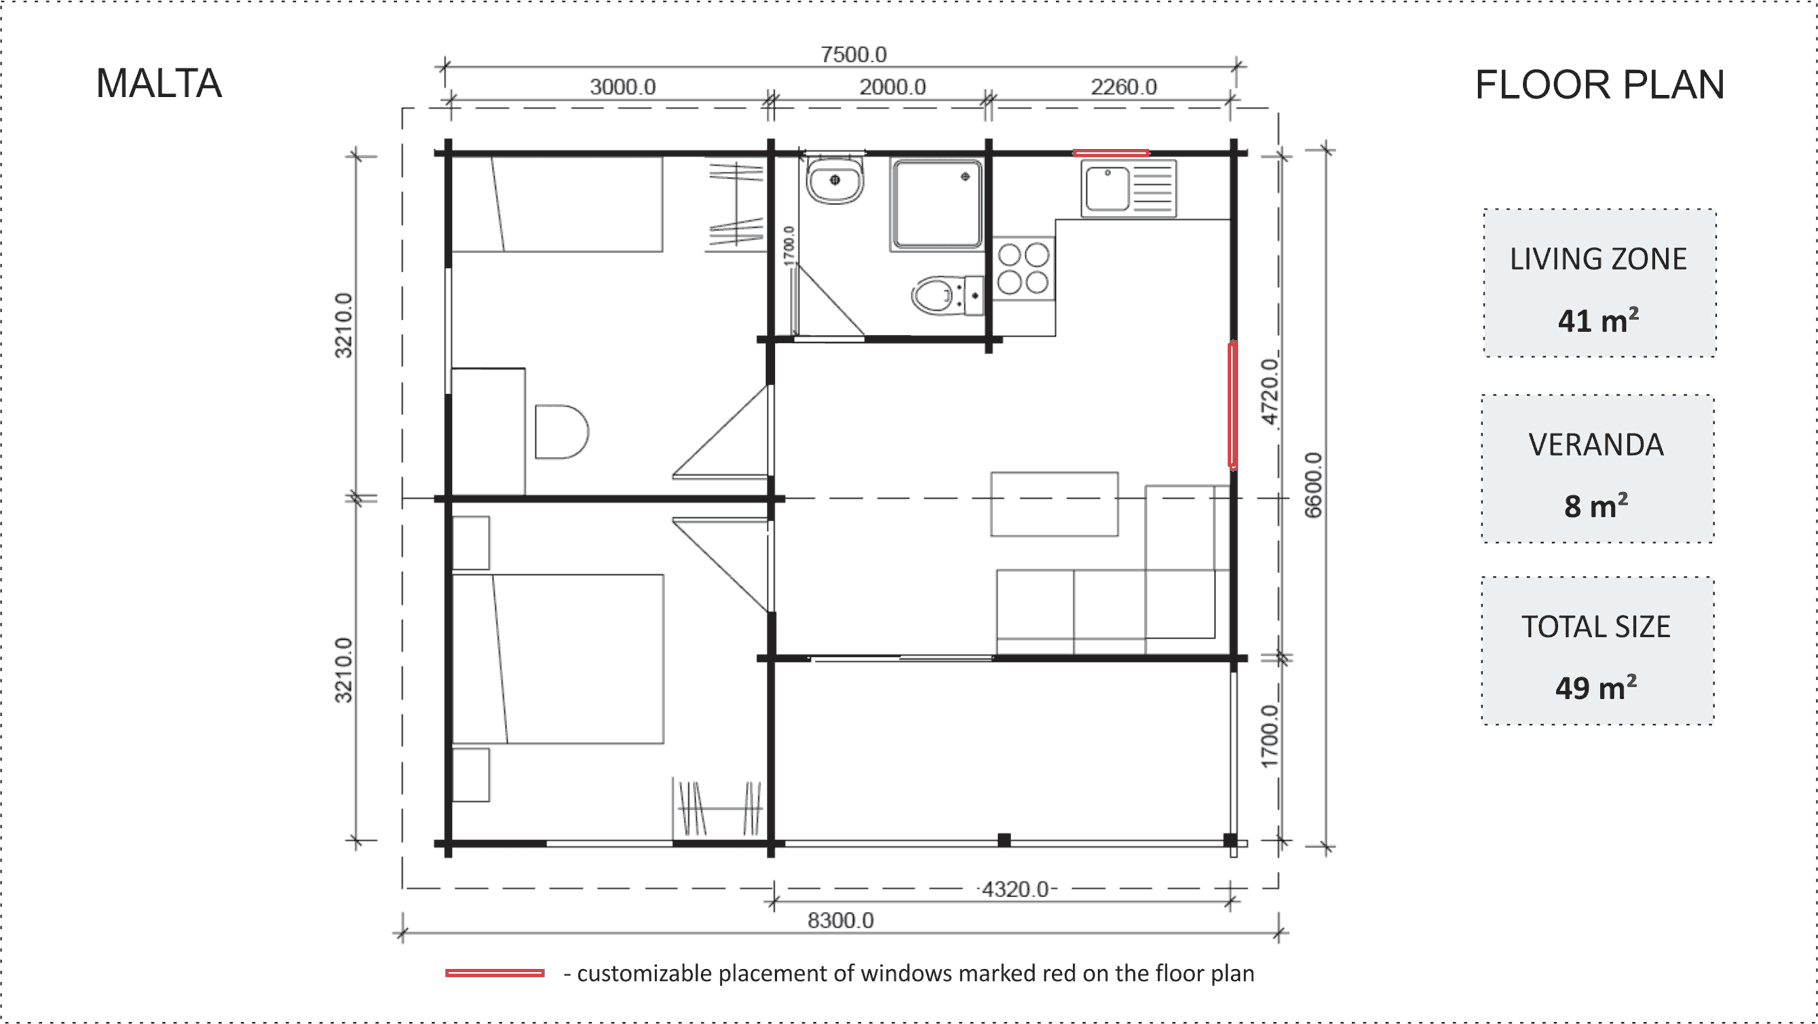 Granny flat Malta 2 bedroom floor plan